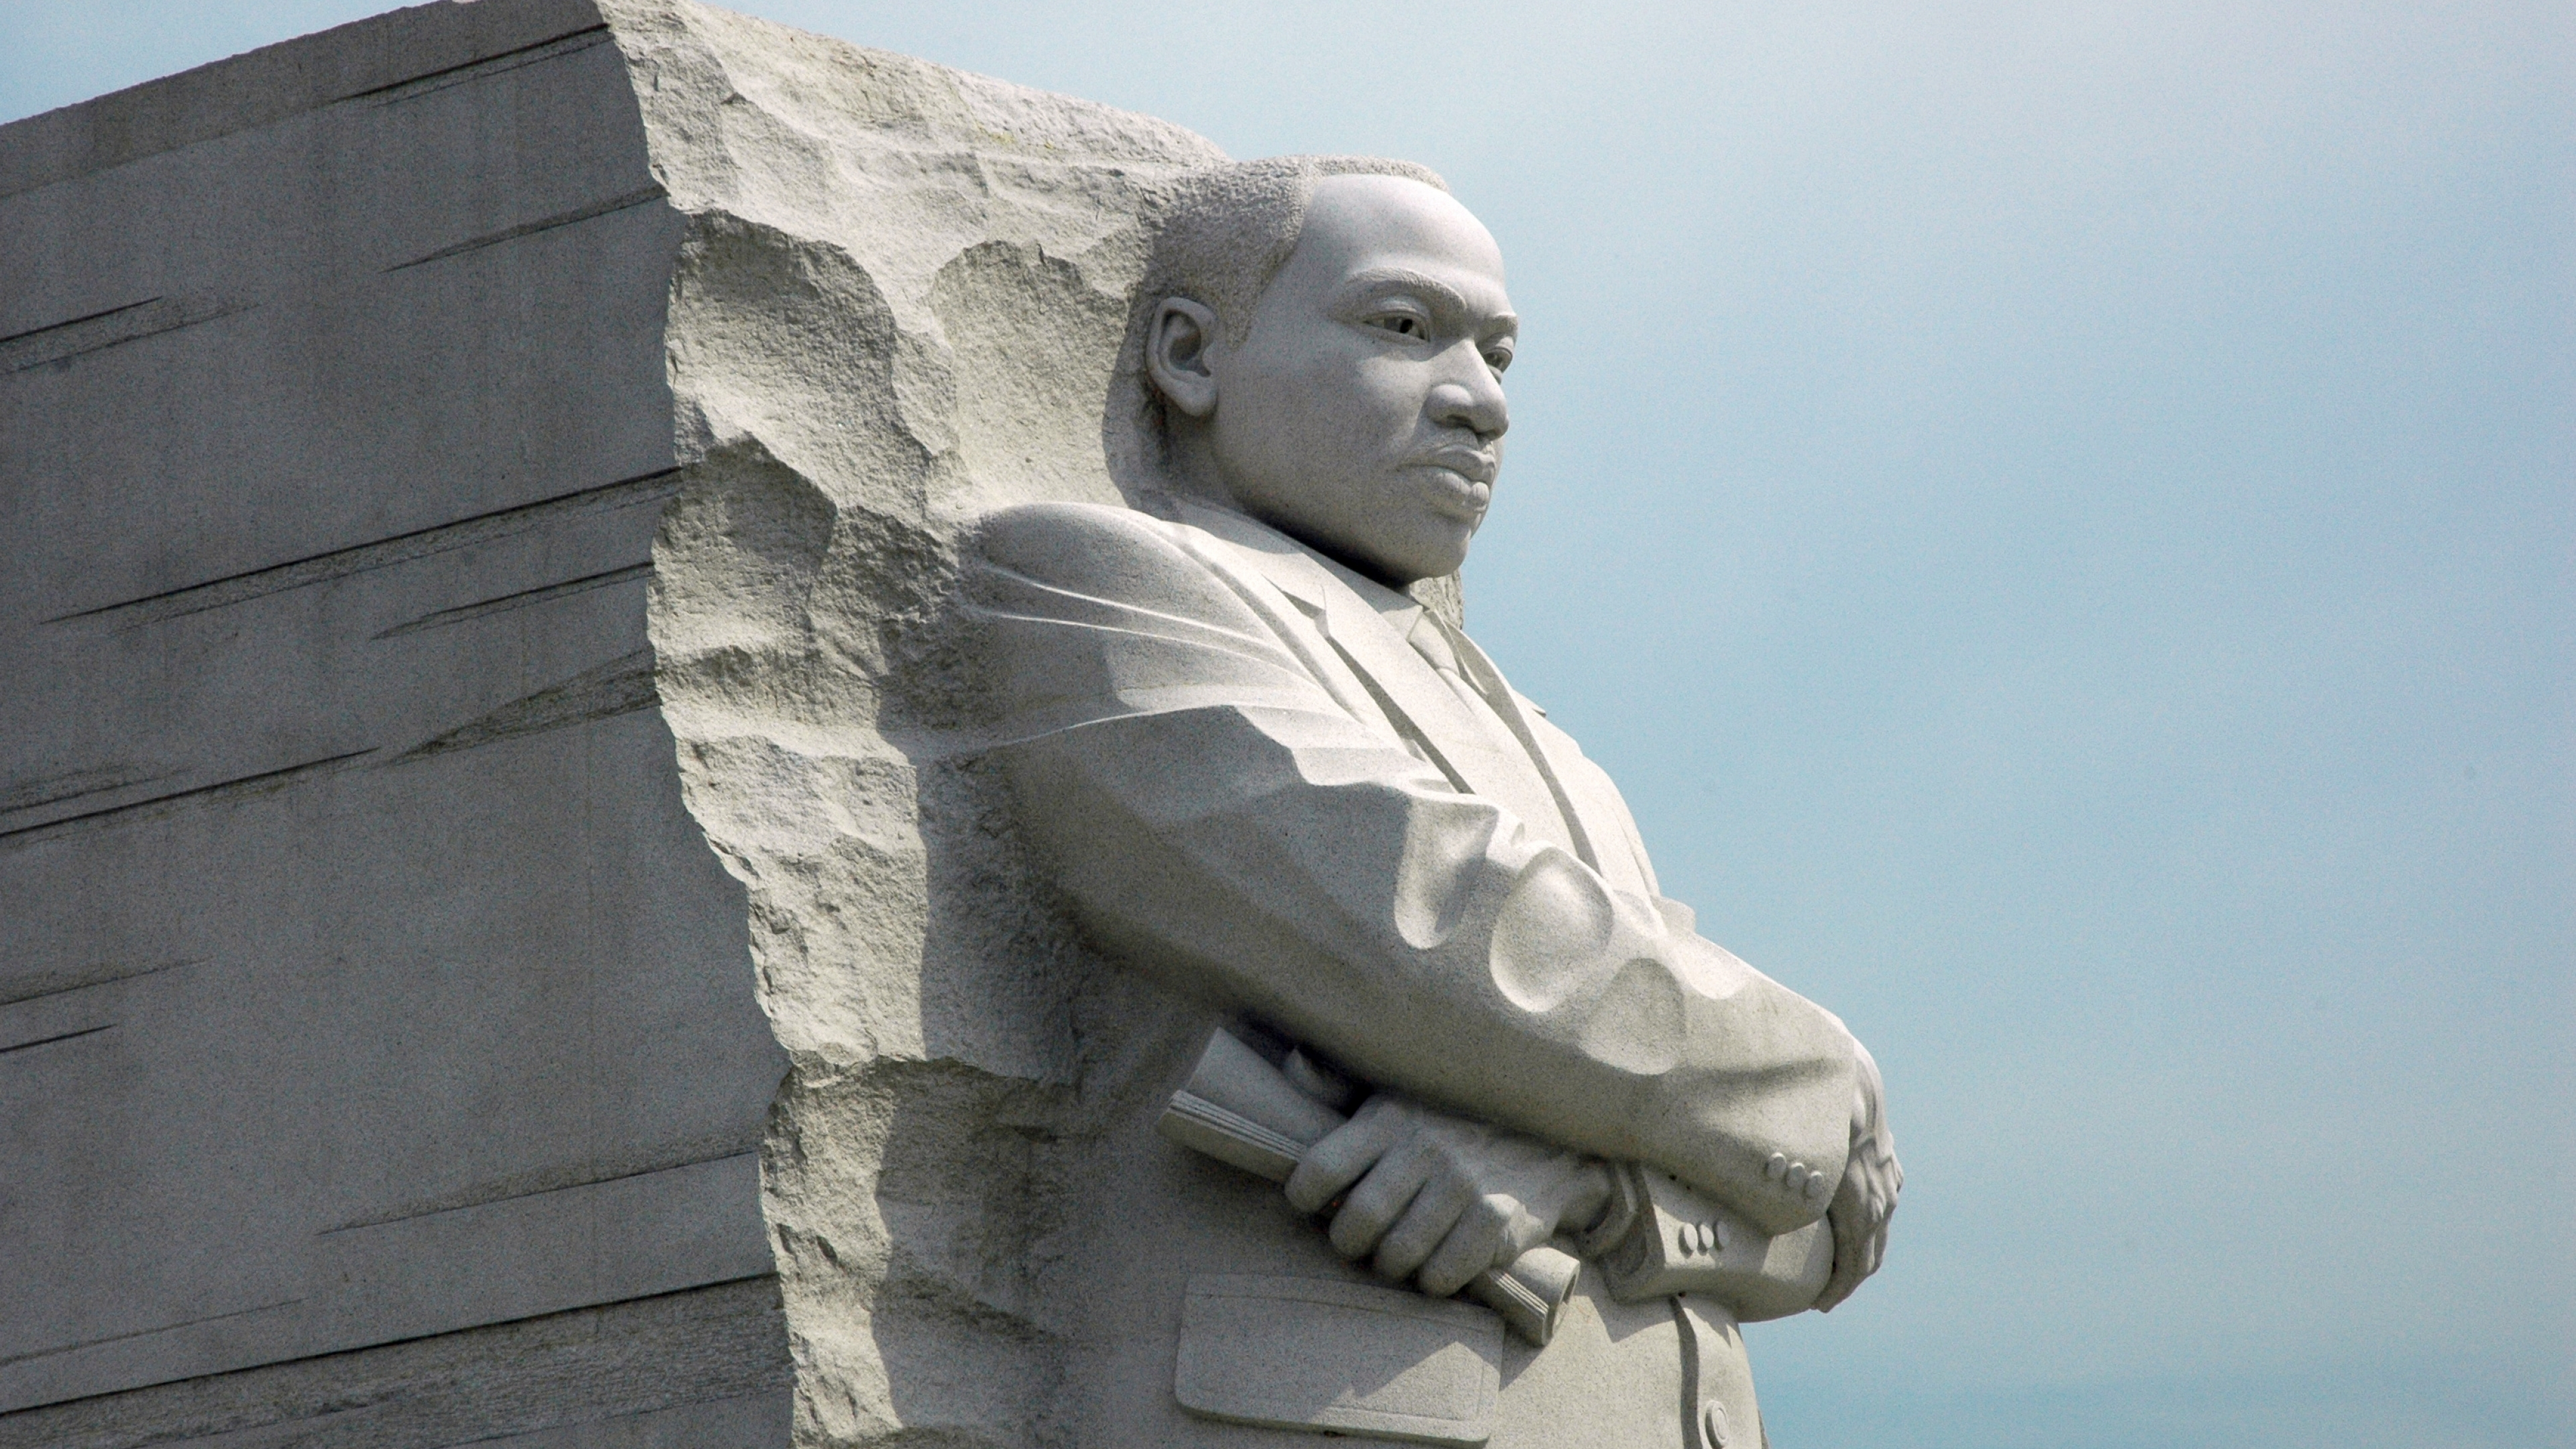 Stone monument depicting Dr. Martin Luther King, Jr.